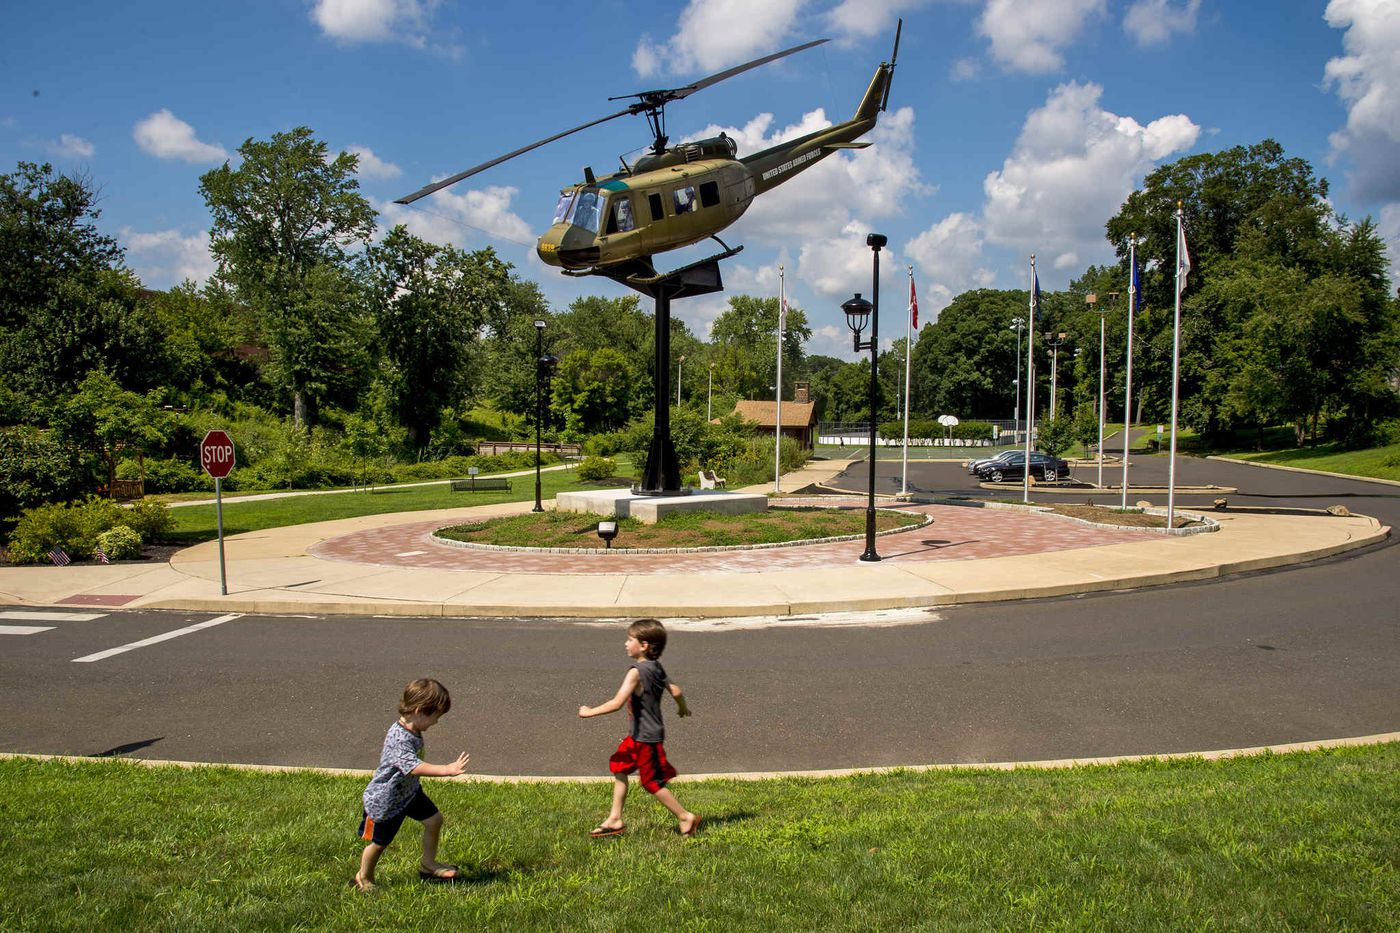 Noah (left, 3) and Nate Kolsky, 5, pretend to be airplanes, playing near the memorial.